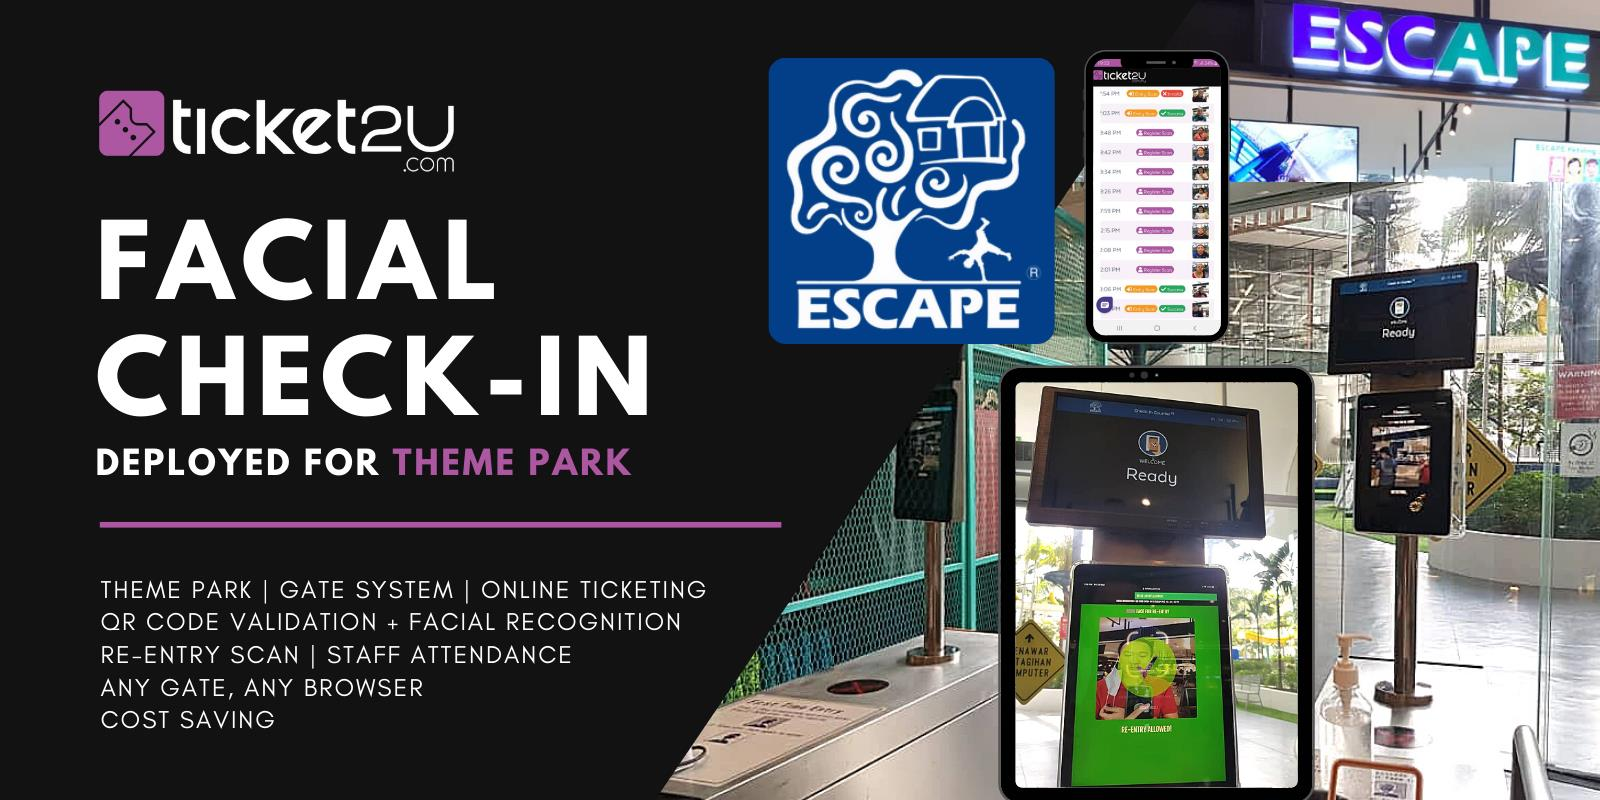 Ticket2U Facial Recognition Check-In